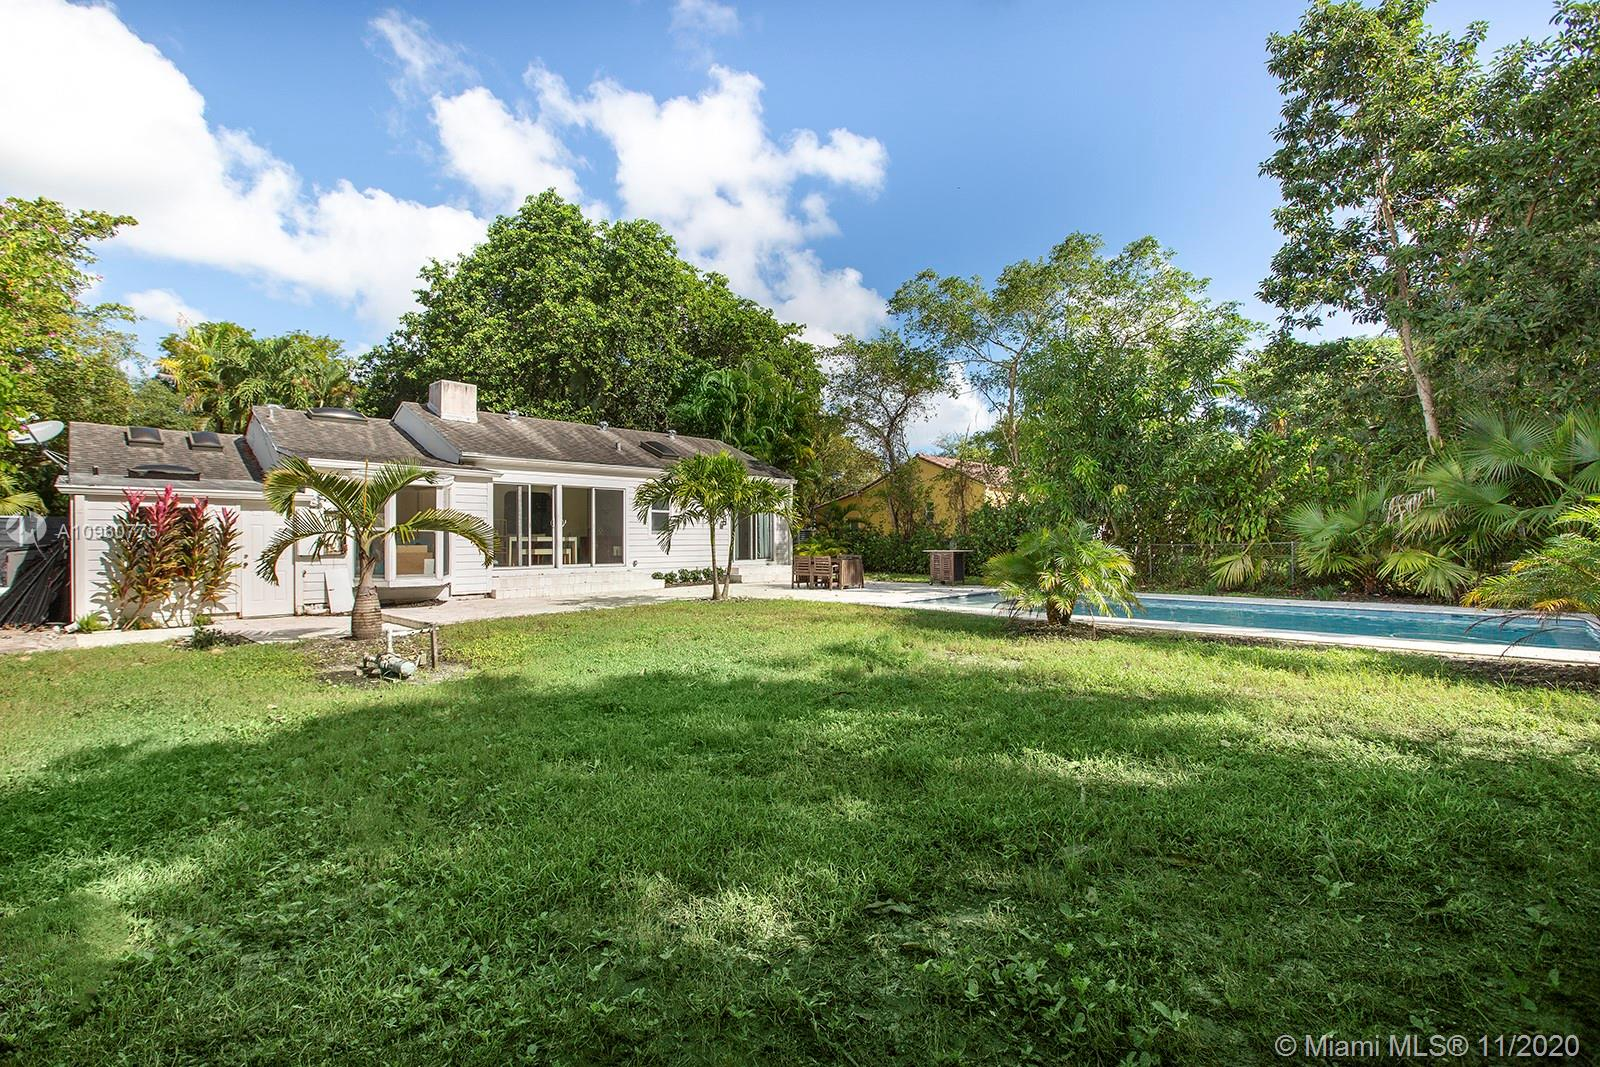 1010 NE 118th St, Biscayne Park, Florida 33161, 3 Bedrooms Bedrooms, ,2 BathroomsBathrooms,Residential,For Sale,1010 NE 118th St,A10960775